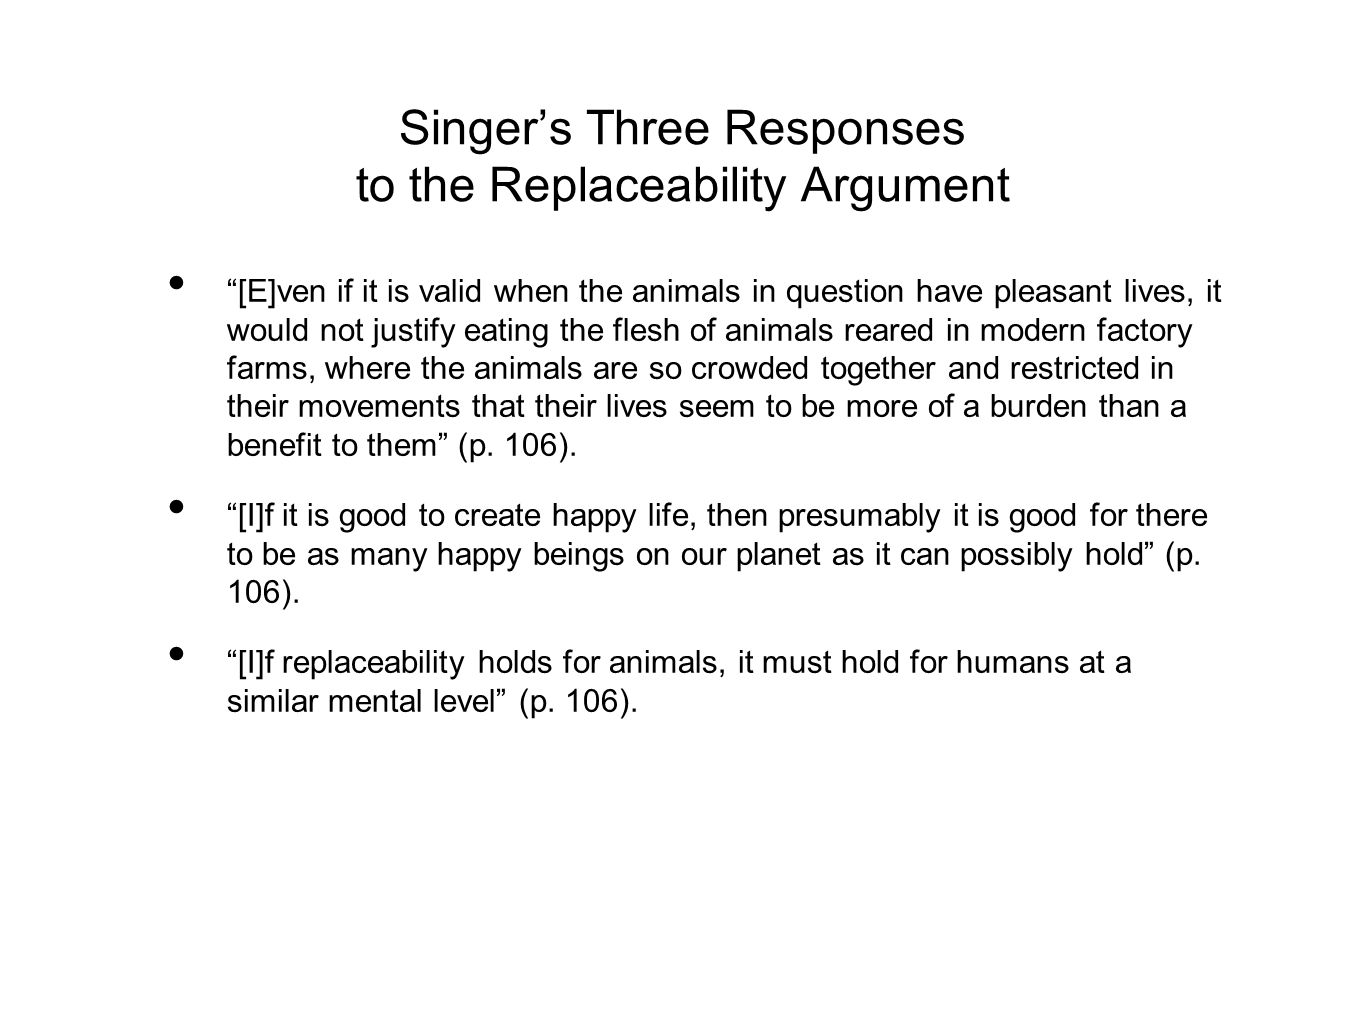 Singer's Three Responses to the Replaceability Argument [E]ven if it is valid when the animals in question have pleasant lives, it would not justify eating the flesh of animals reared in modern factory farms, where the animals are so crowded together and restricted in their movements that their lives seem to be more of a burden than a benefit to them (p.